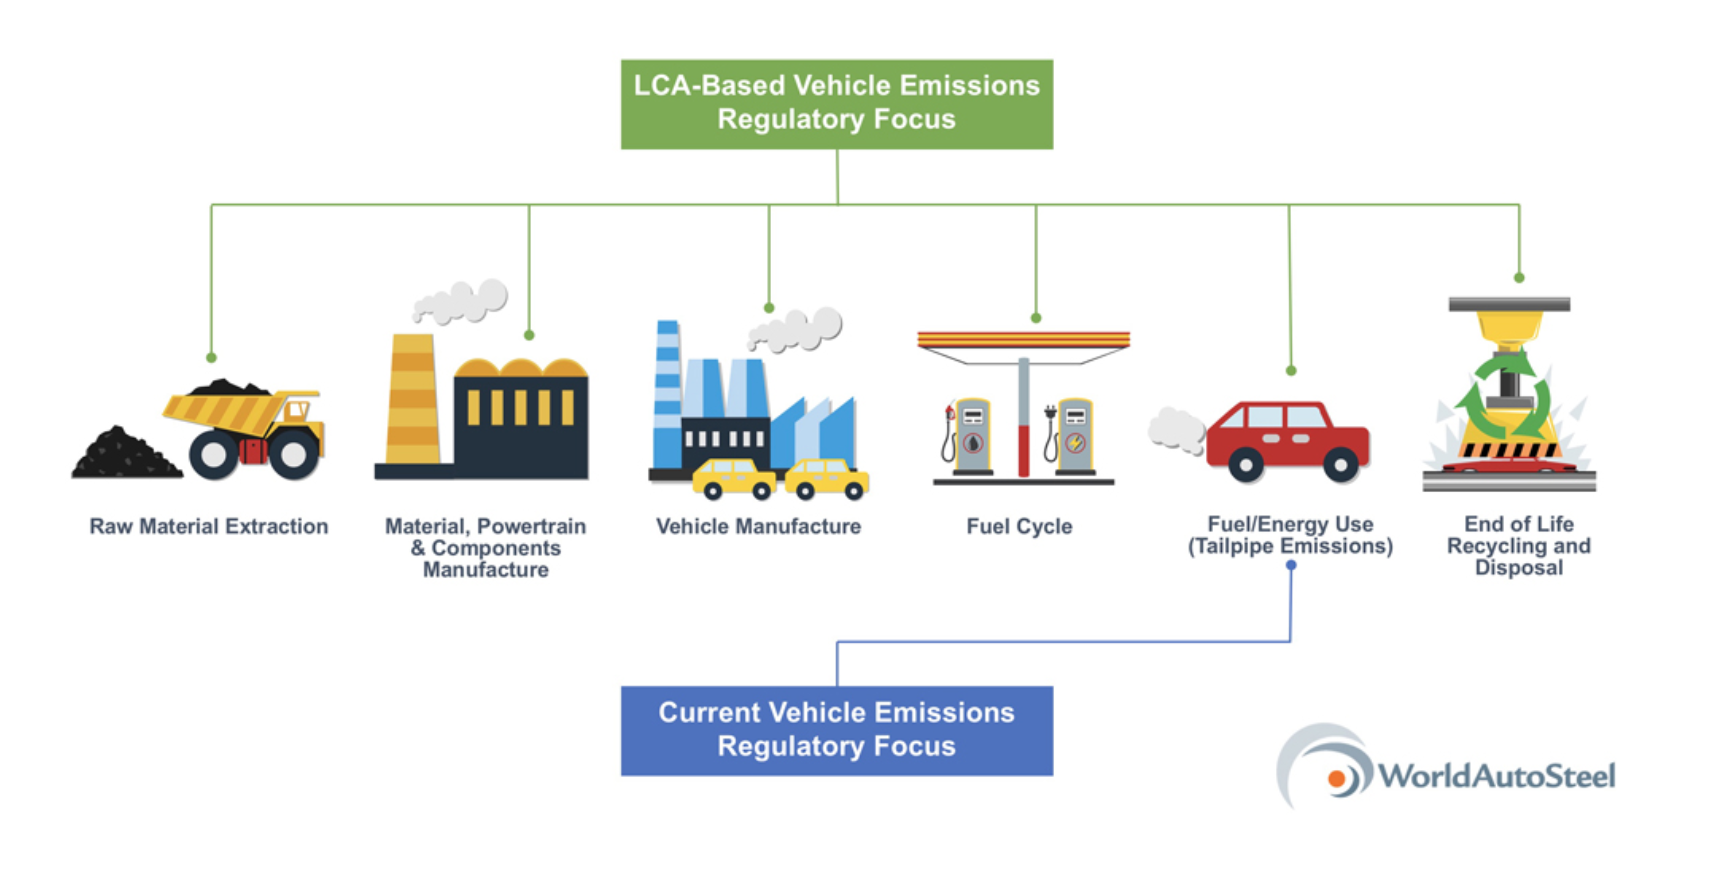 What difference does life cycle assessment-based regulation make?